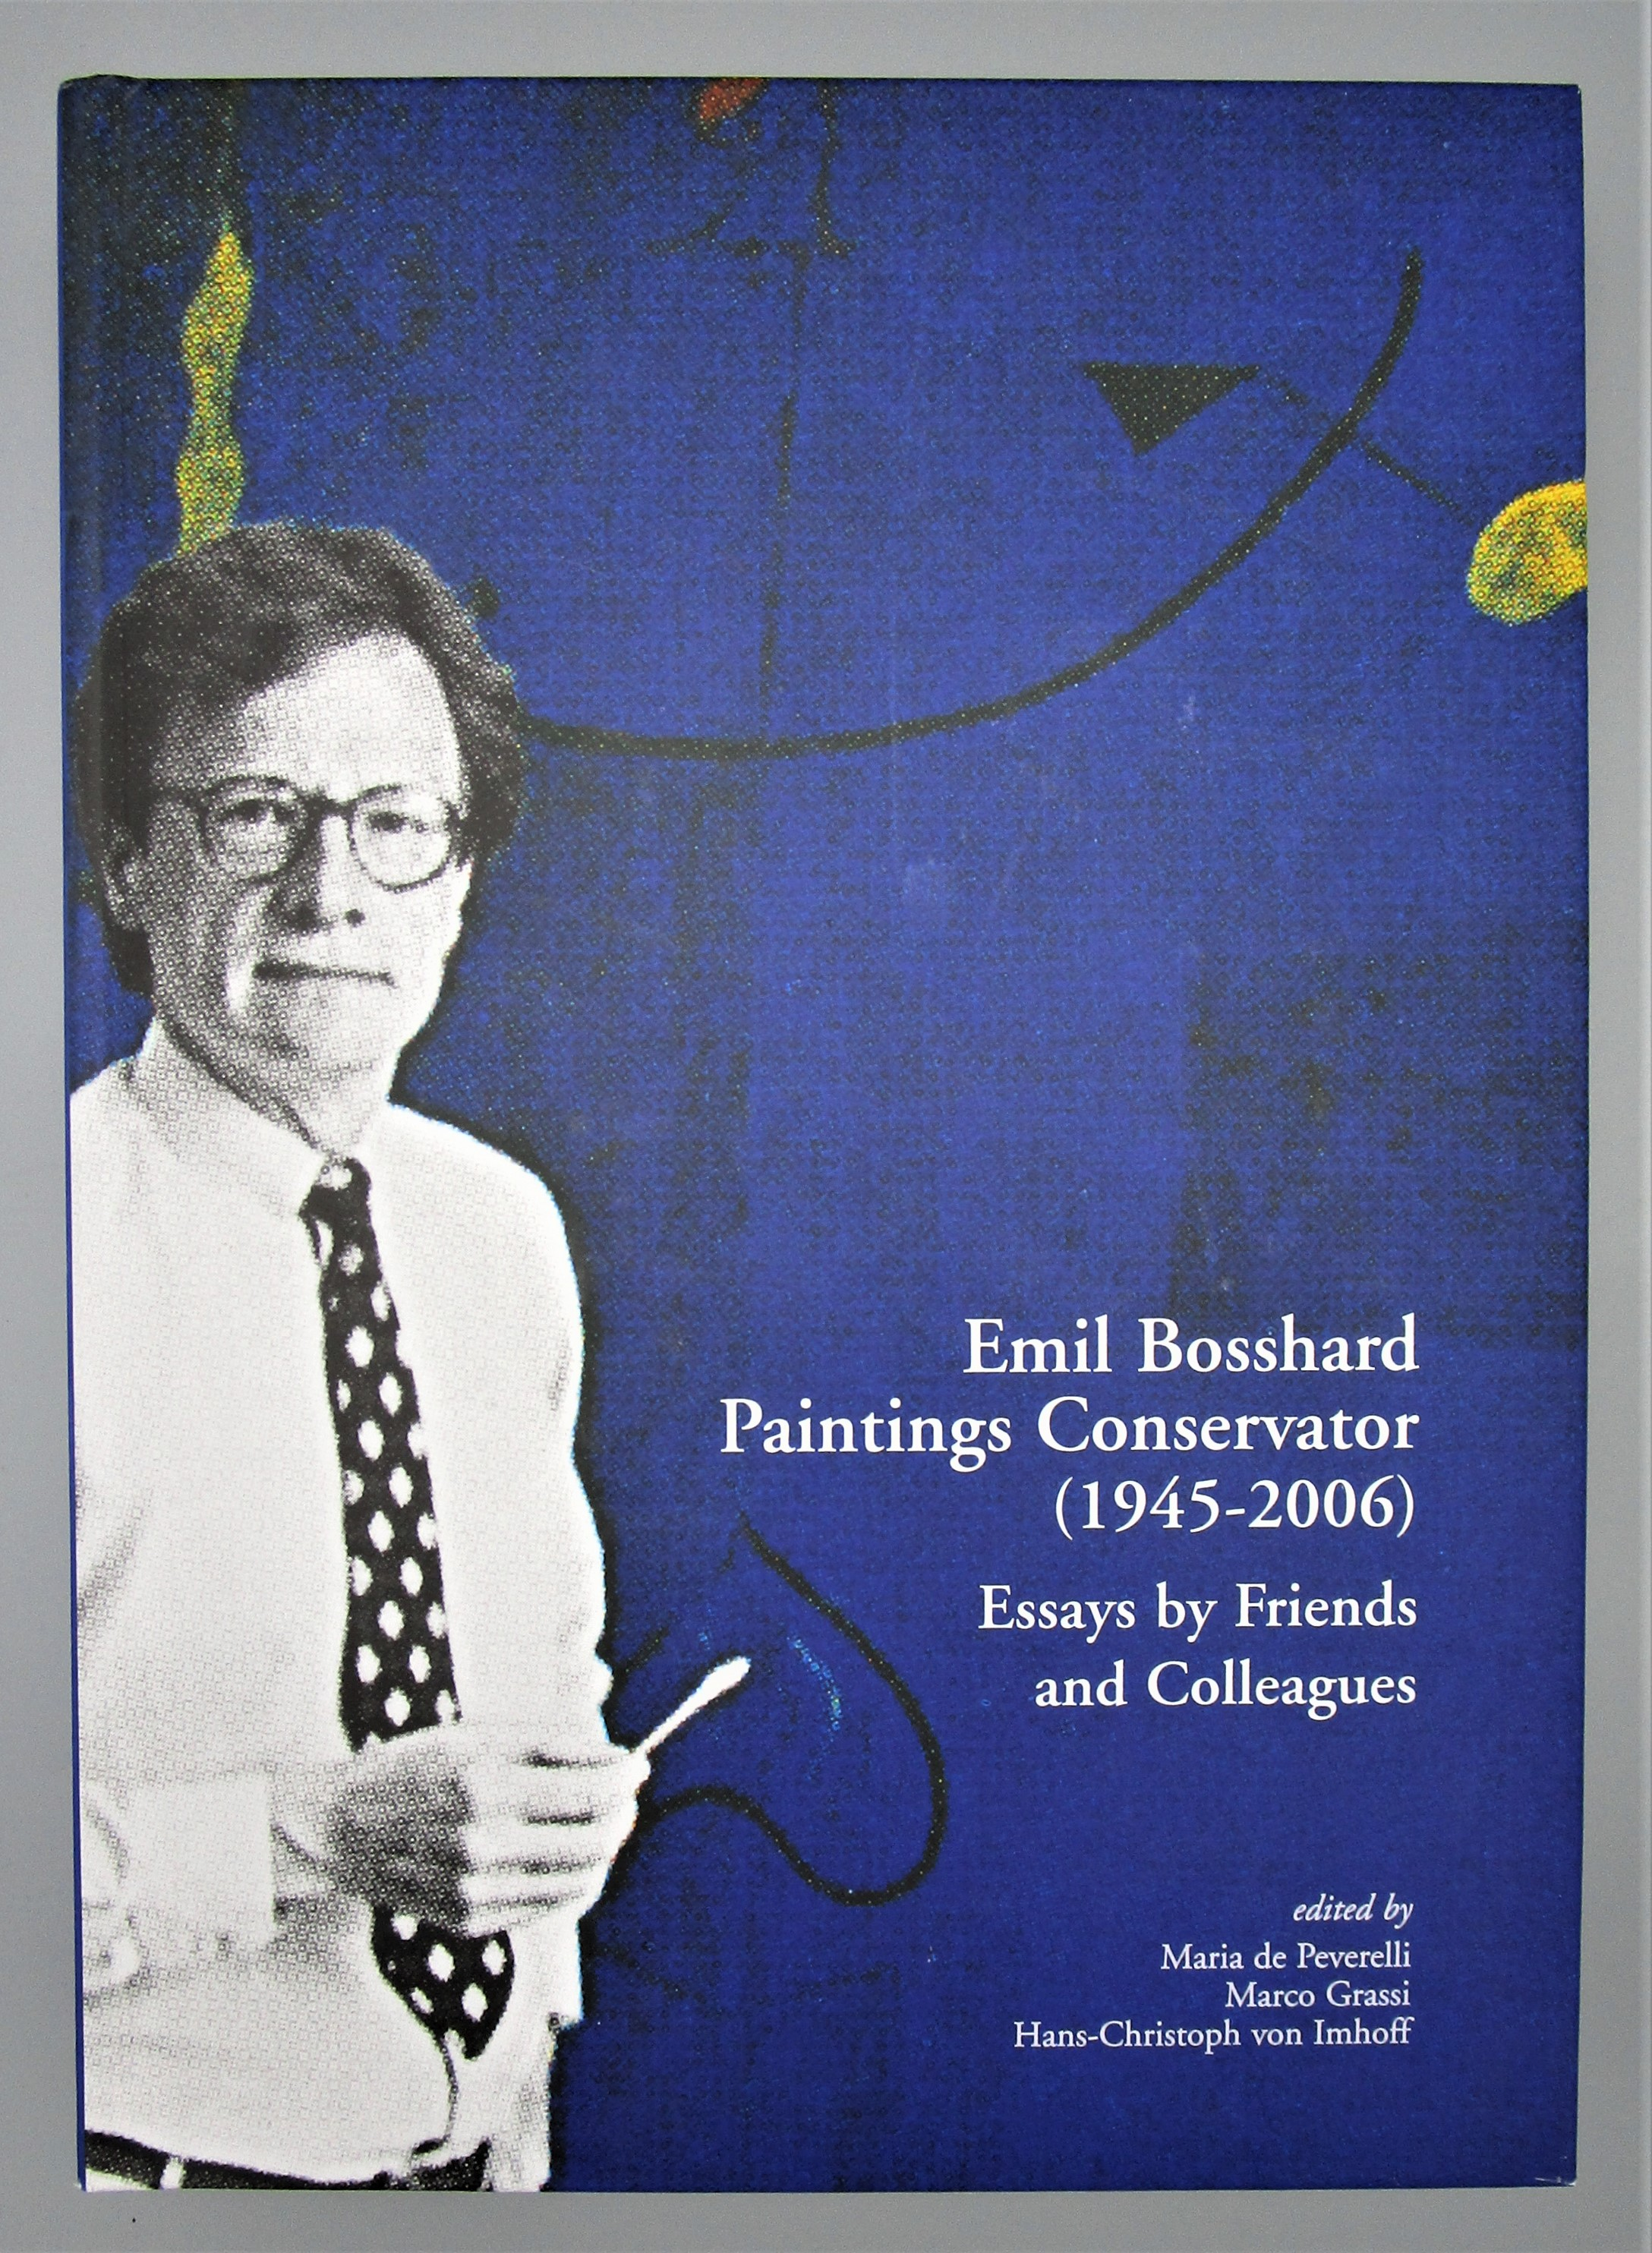 EMIL BOSSHARD: PAINTINGS CONSERVATOR, by Peverelli, Grassi, Imhoff (eds) - 2009